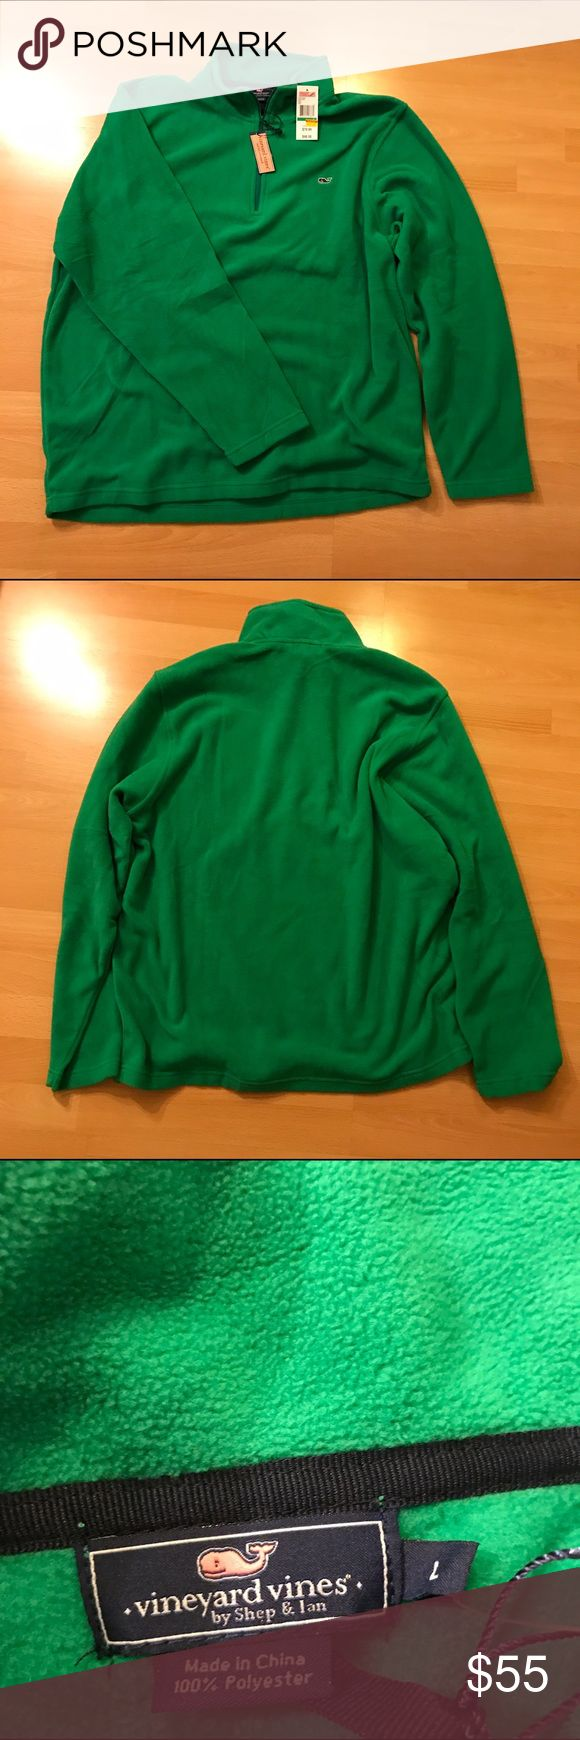 Vineyard Vines 1/4th Zip Pullover For sale is a new with tags Vineyard Vines 1/4th zip pullover. Color is green fern with embroidered whale logo on the front. Material is polyester fleece. Message if any questions. Vineyard Vines Jackets & Coats